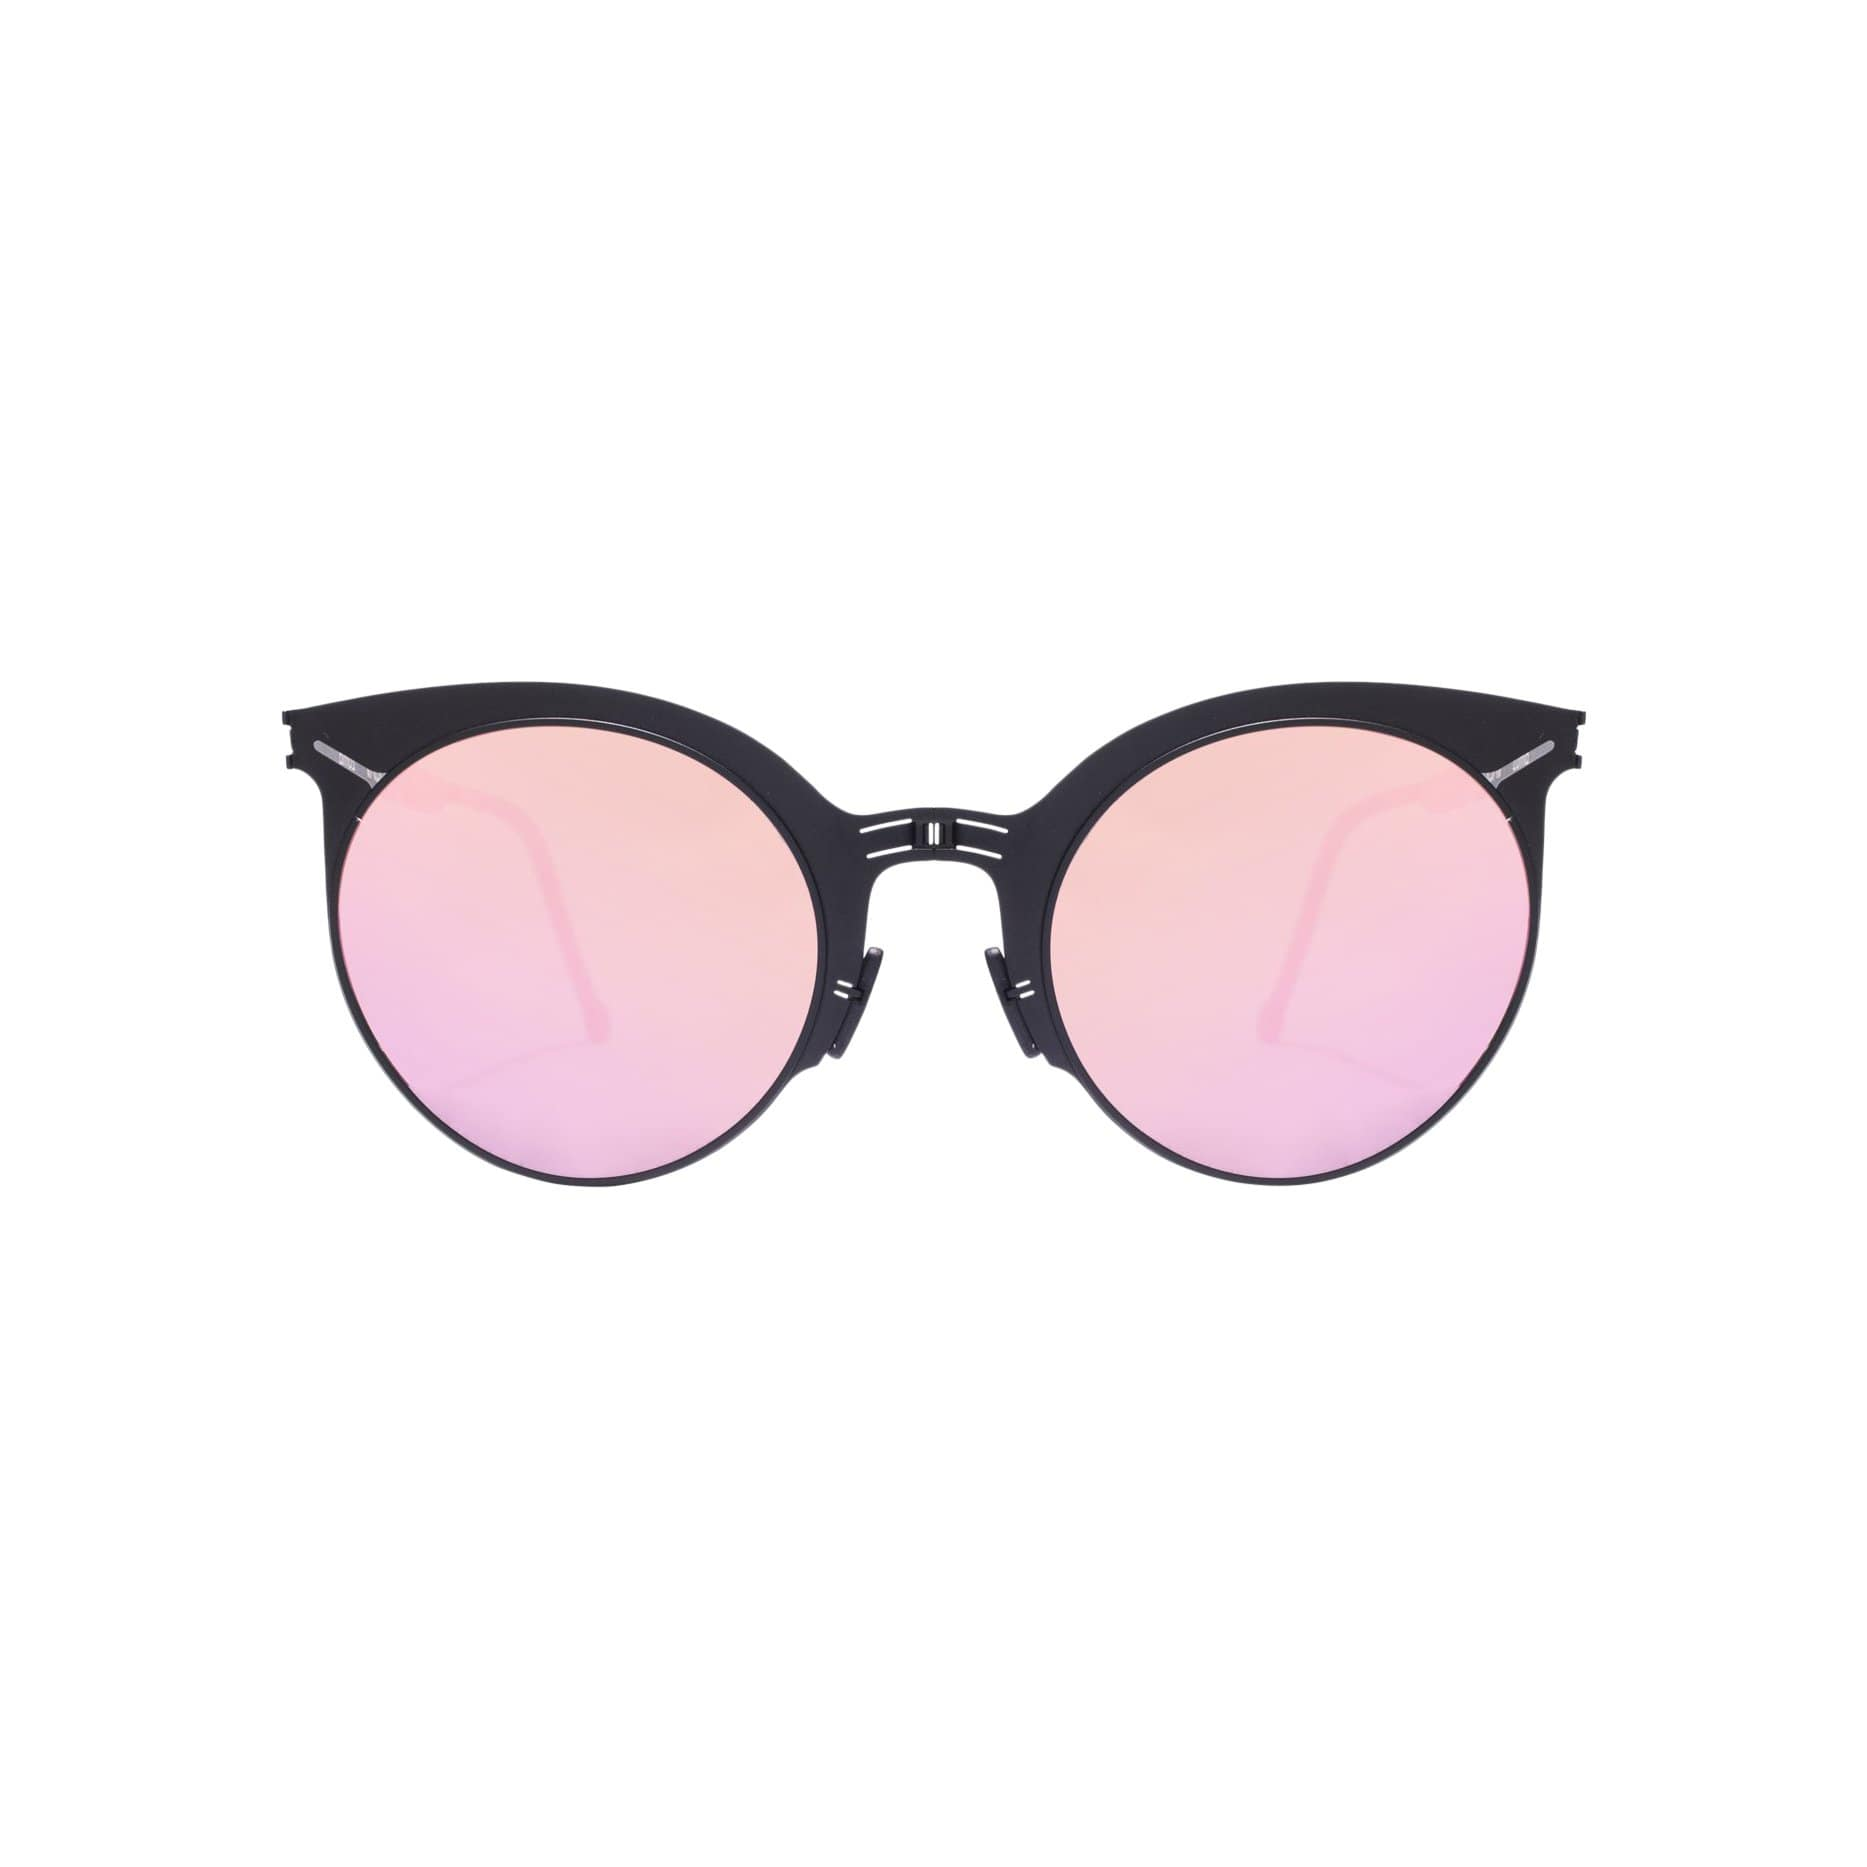 ROAV Eyewear Sunglasses + Eyewear Zuma-Black-Grapefruit